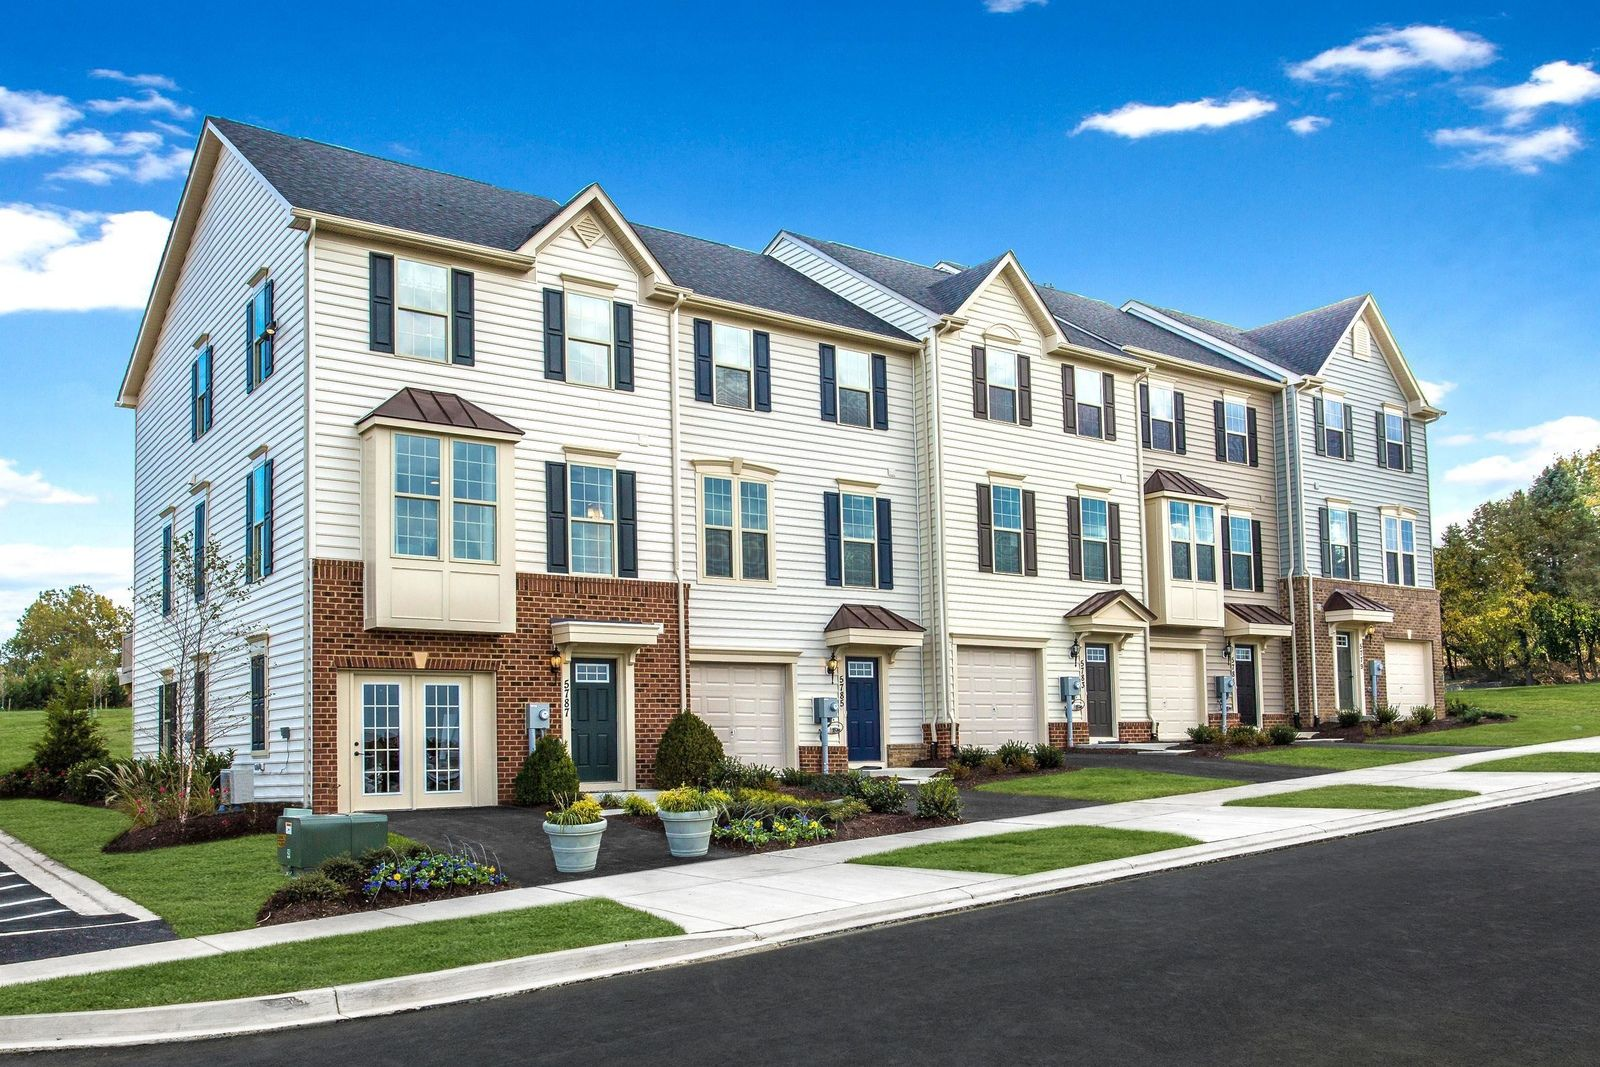 Welcome to Mapleview:Lowest priced new townhomes with low HOA fees in Downingtown schools. Located across from sought-after Applecross Country Club.Click here to schedule your visit today!